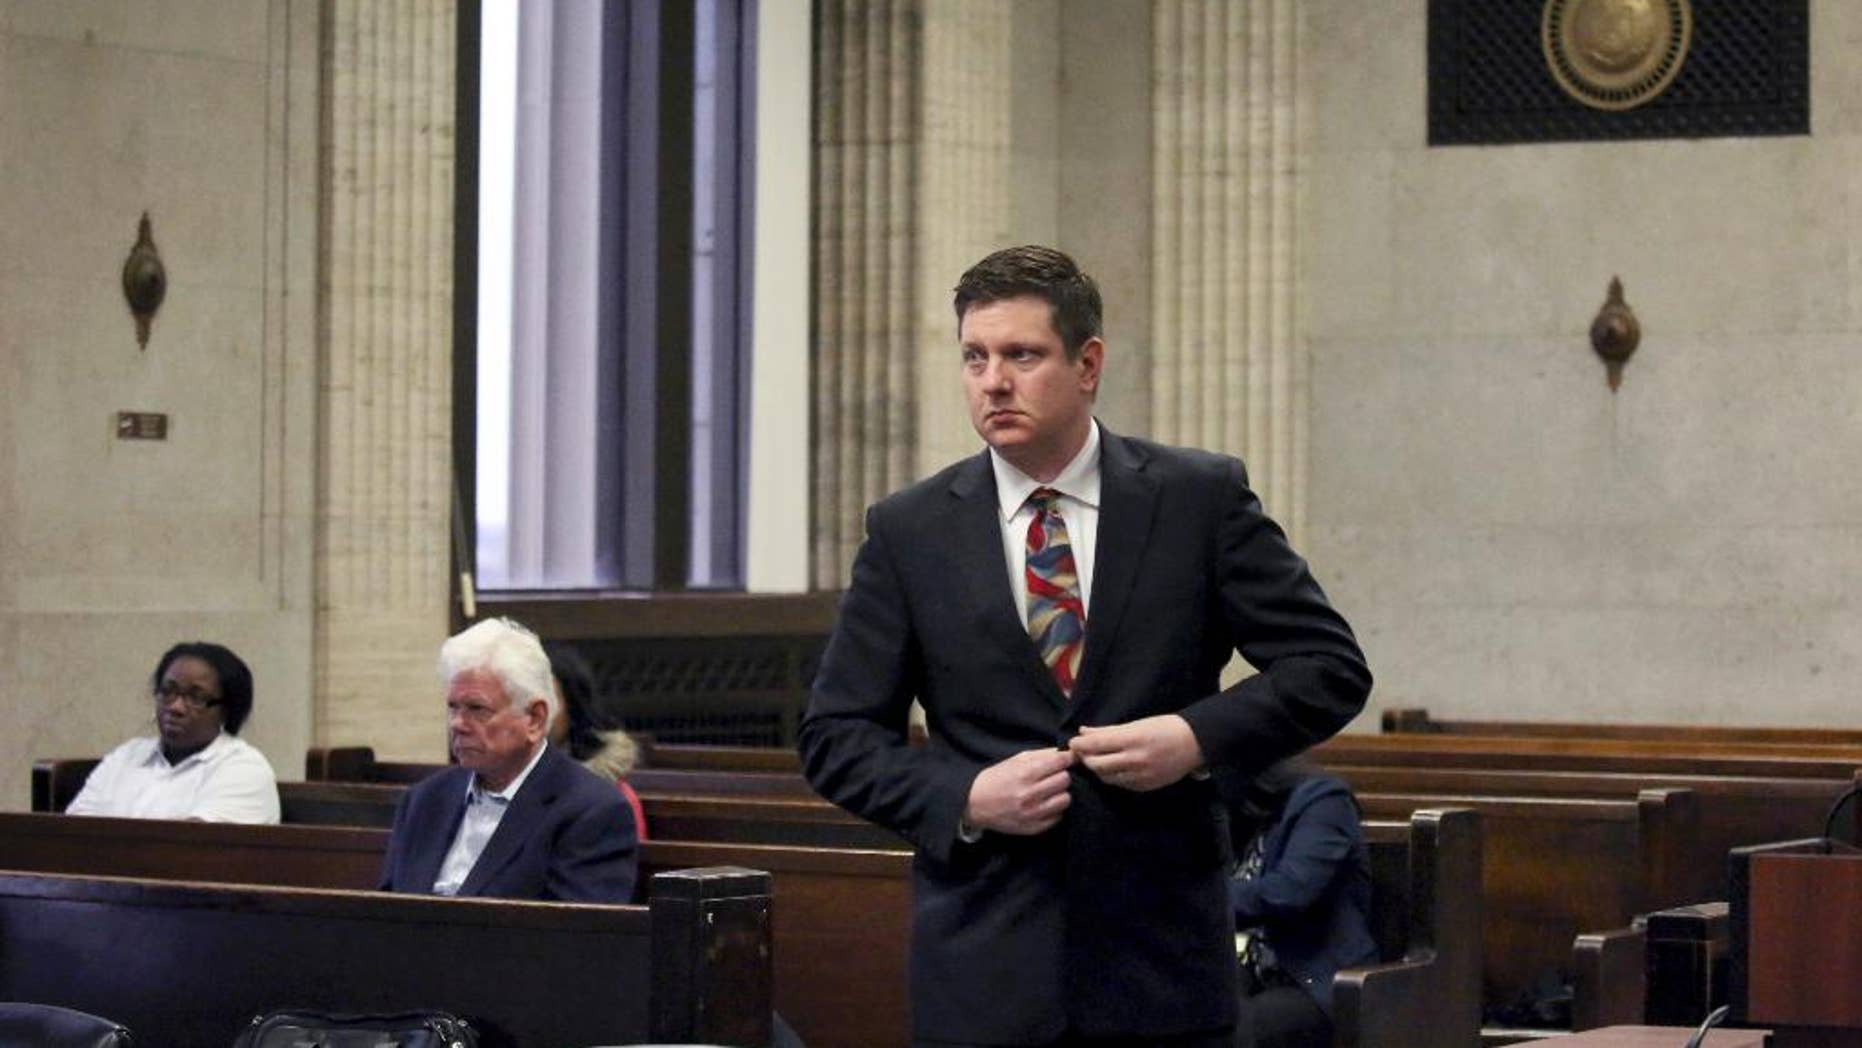 Chicago Police Officer Jason Van Dyke approaches the bench for his hearing with Judge Vincent Gaughan at the Leighton Criminal Courts Building in Chicago Tuesday Jan. 10, 2017, in Chicago. Van Dyke is charged with murder in the October 2014 death of Laquan McDonald, who was shot 16 times. The Cook County judge on Tuesday ordered the release of McDonald's juvenile records, except for records about his birth mother and sister. (Nancy Stone/Chicago Tribune via AP, Pool)